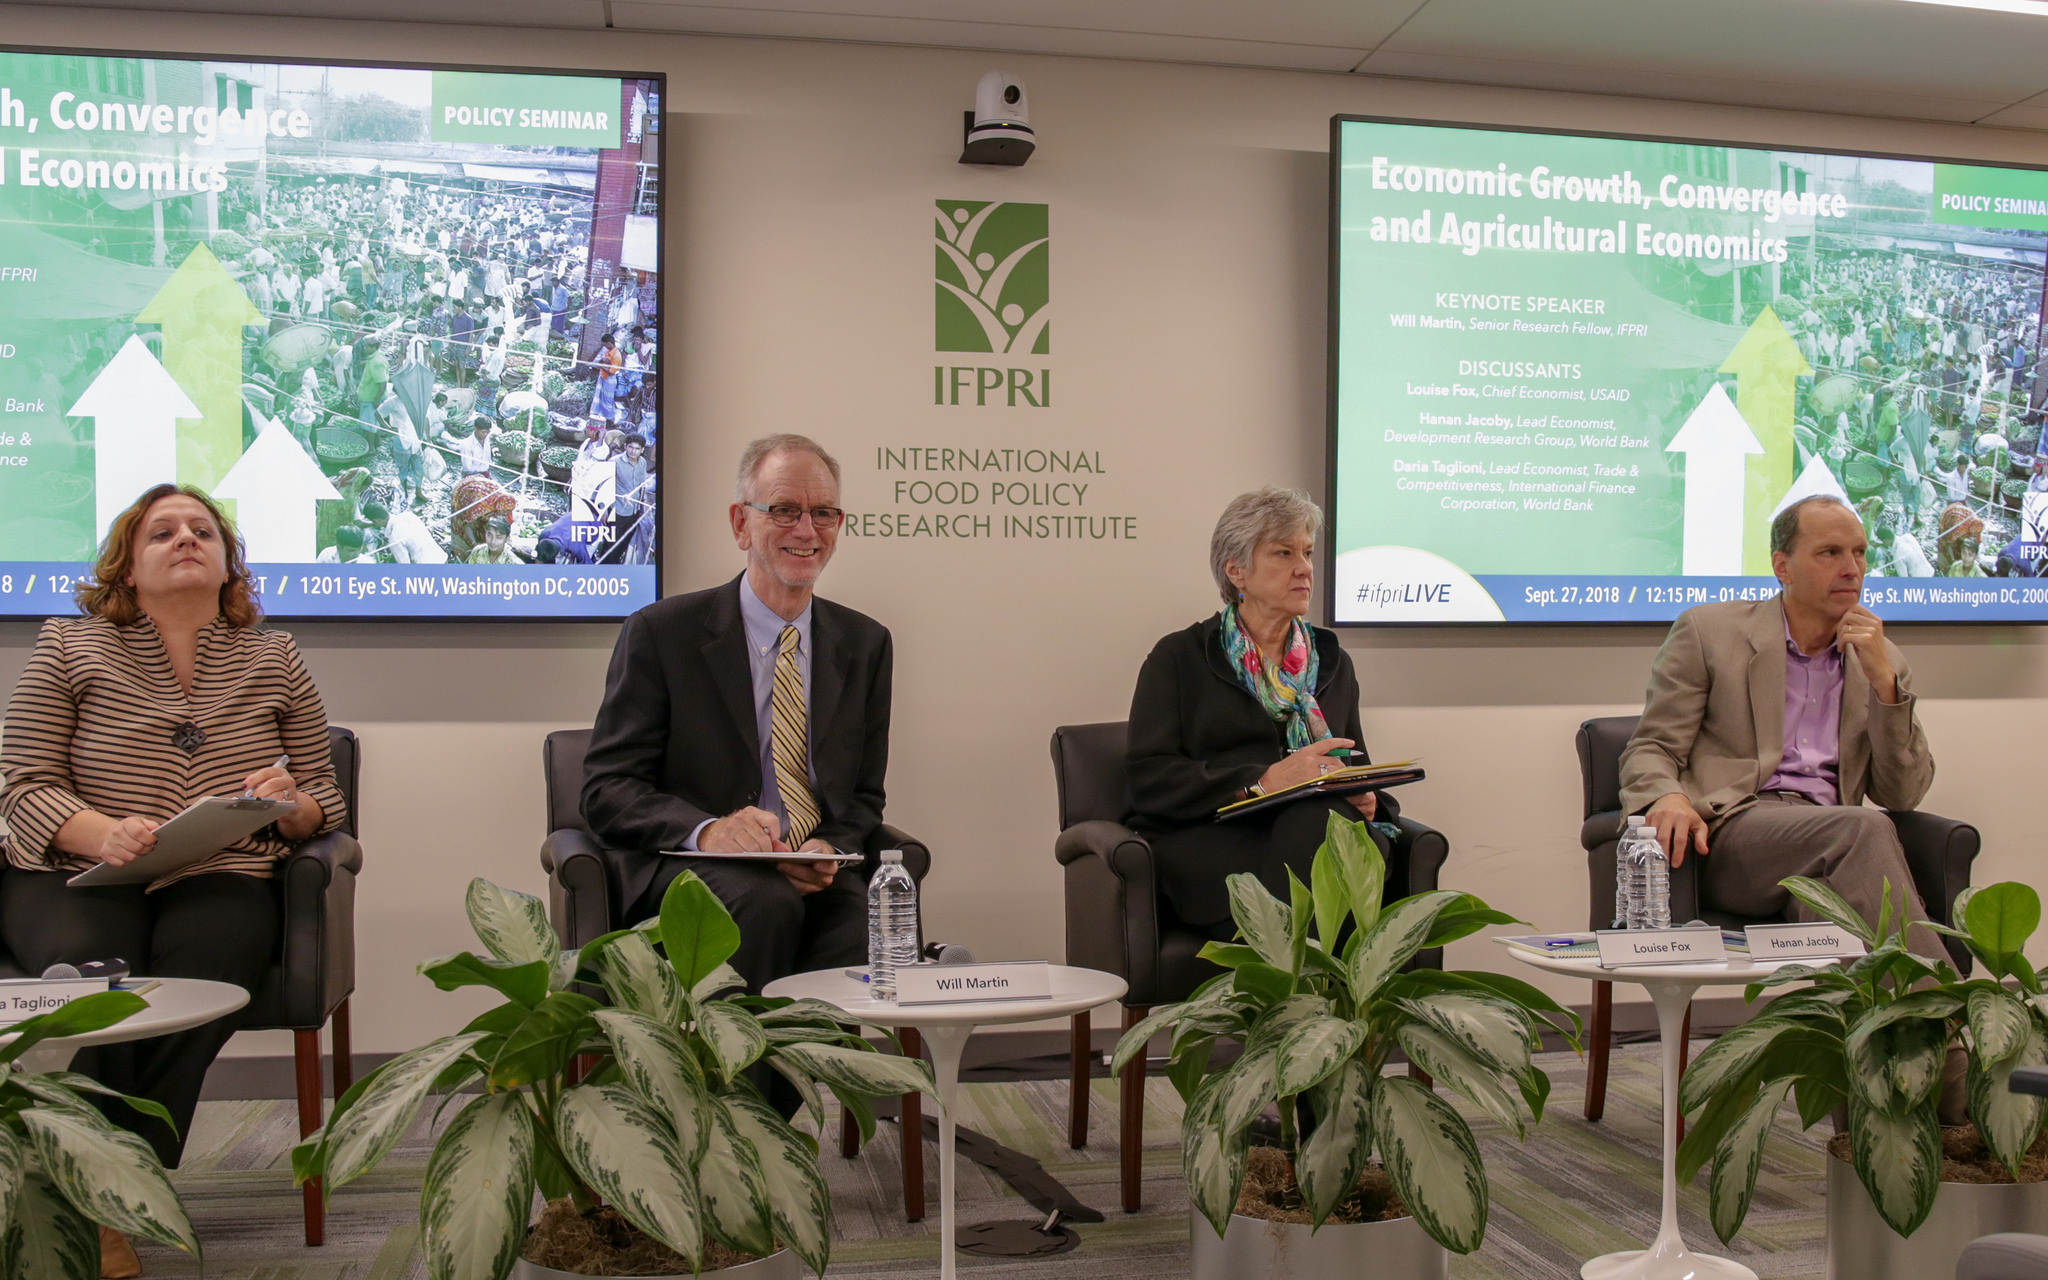 IFPRI Policy Seminar, Economic Growth, Convergence and Agricultural Economics